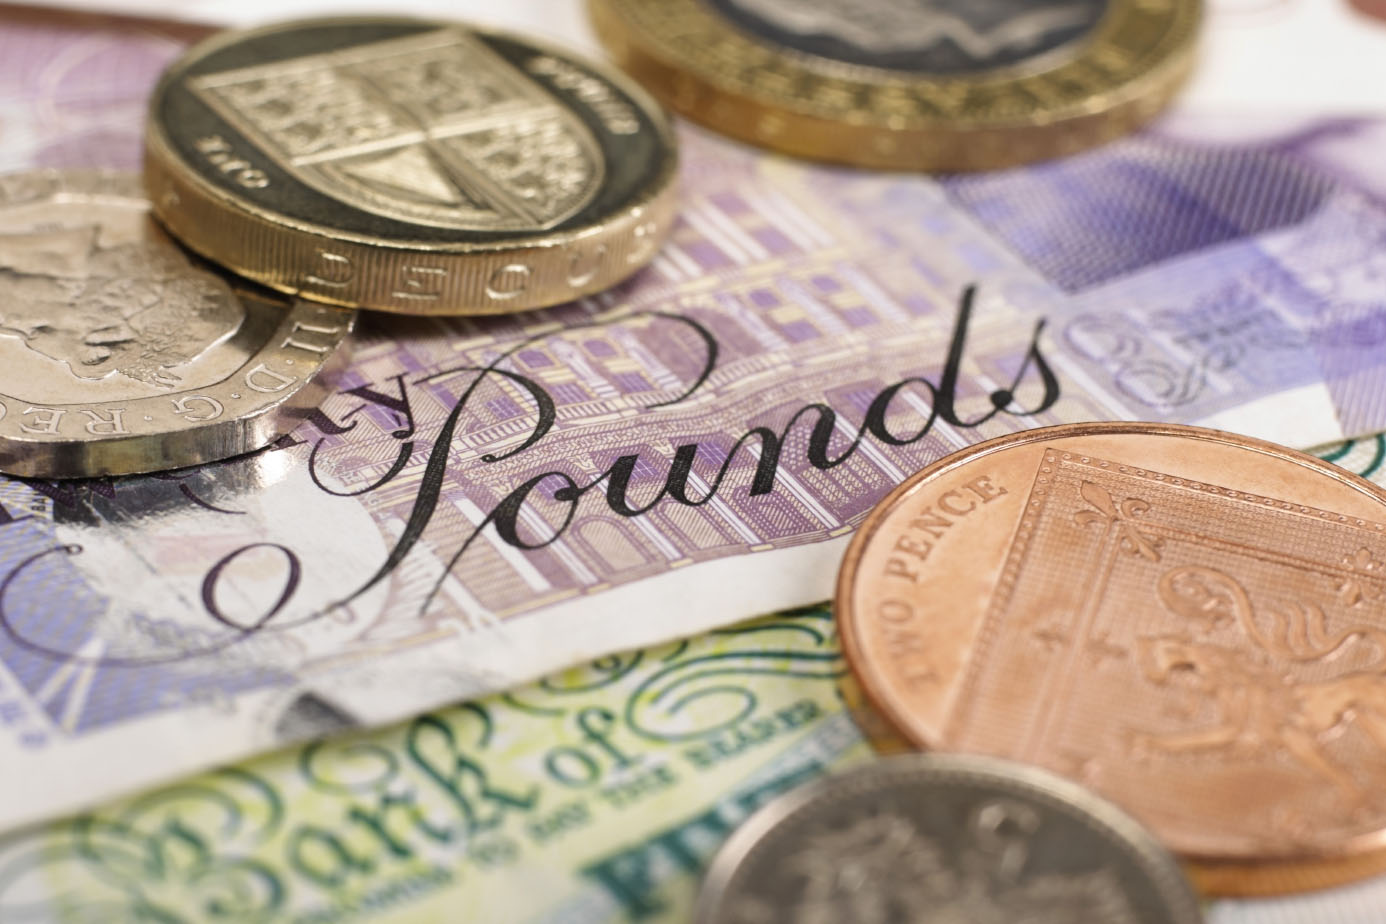 UK pound money currency sterling